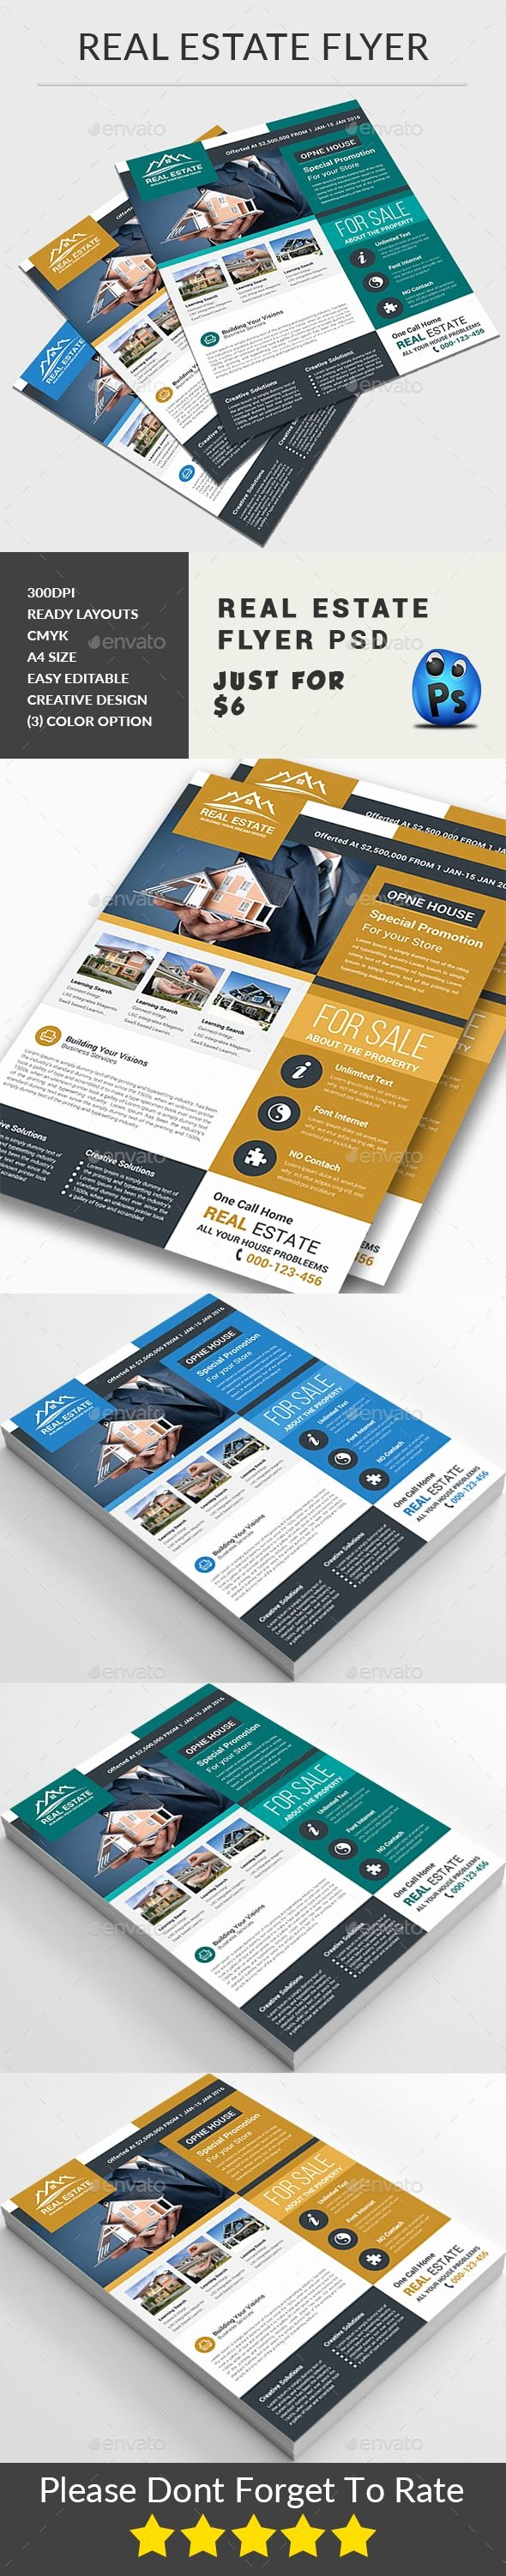 Real Estate Flyer Ideas Luxury 25 Best Ideas About Real Estate Flyers On Pinterest